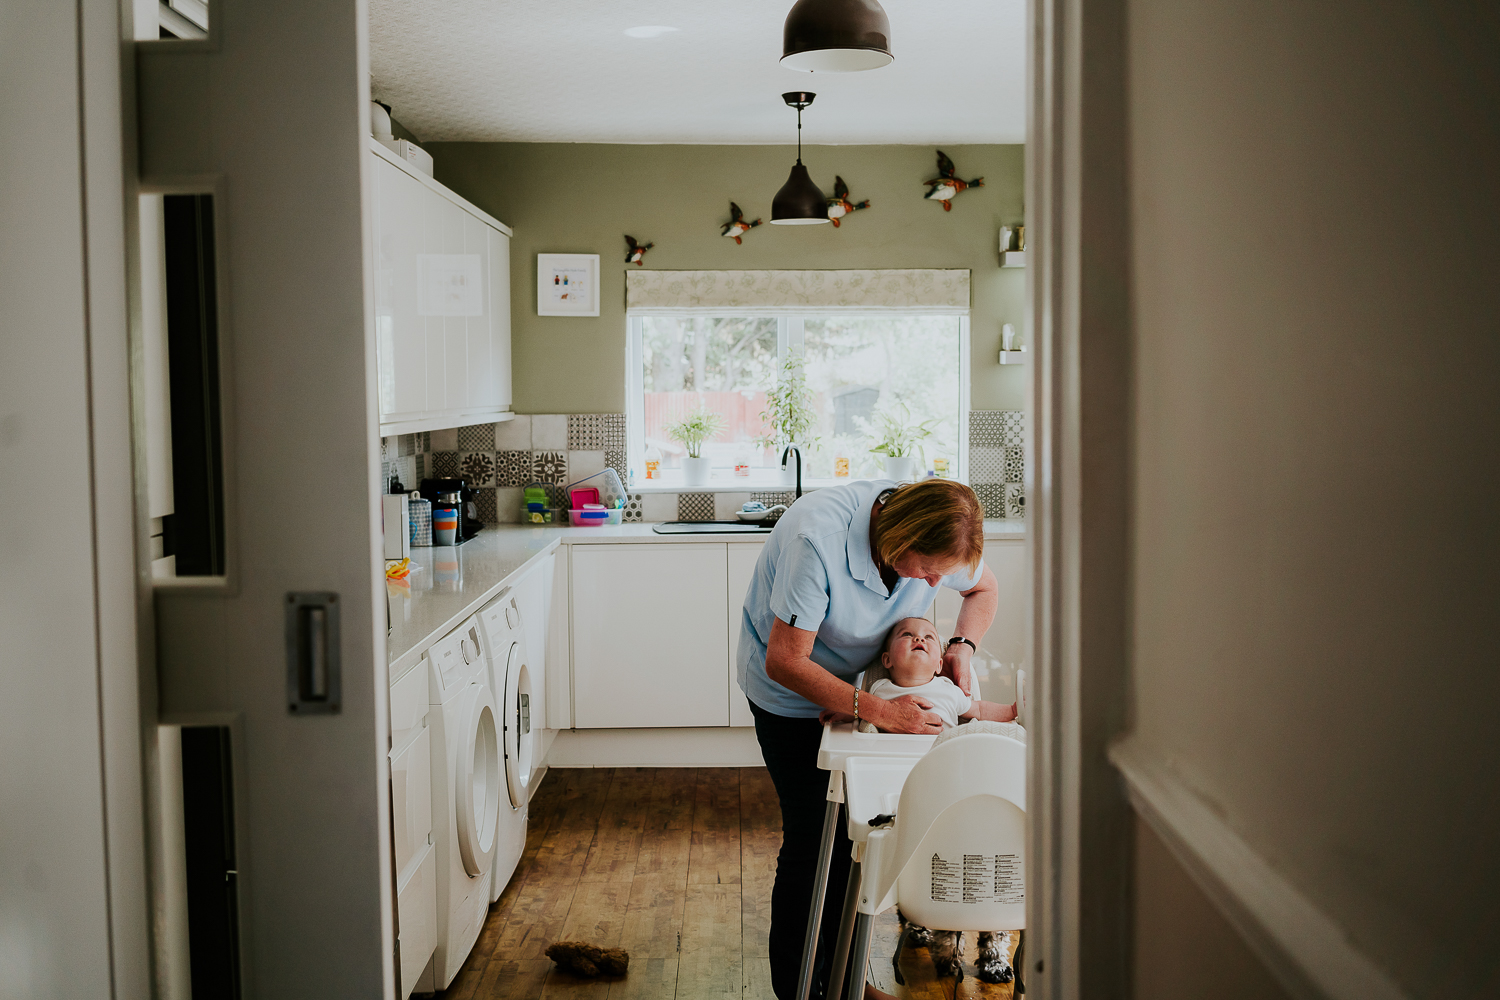 day in the life photo shoot kitchen scene with older woman strapping baby into a highchair